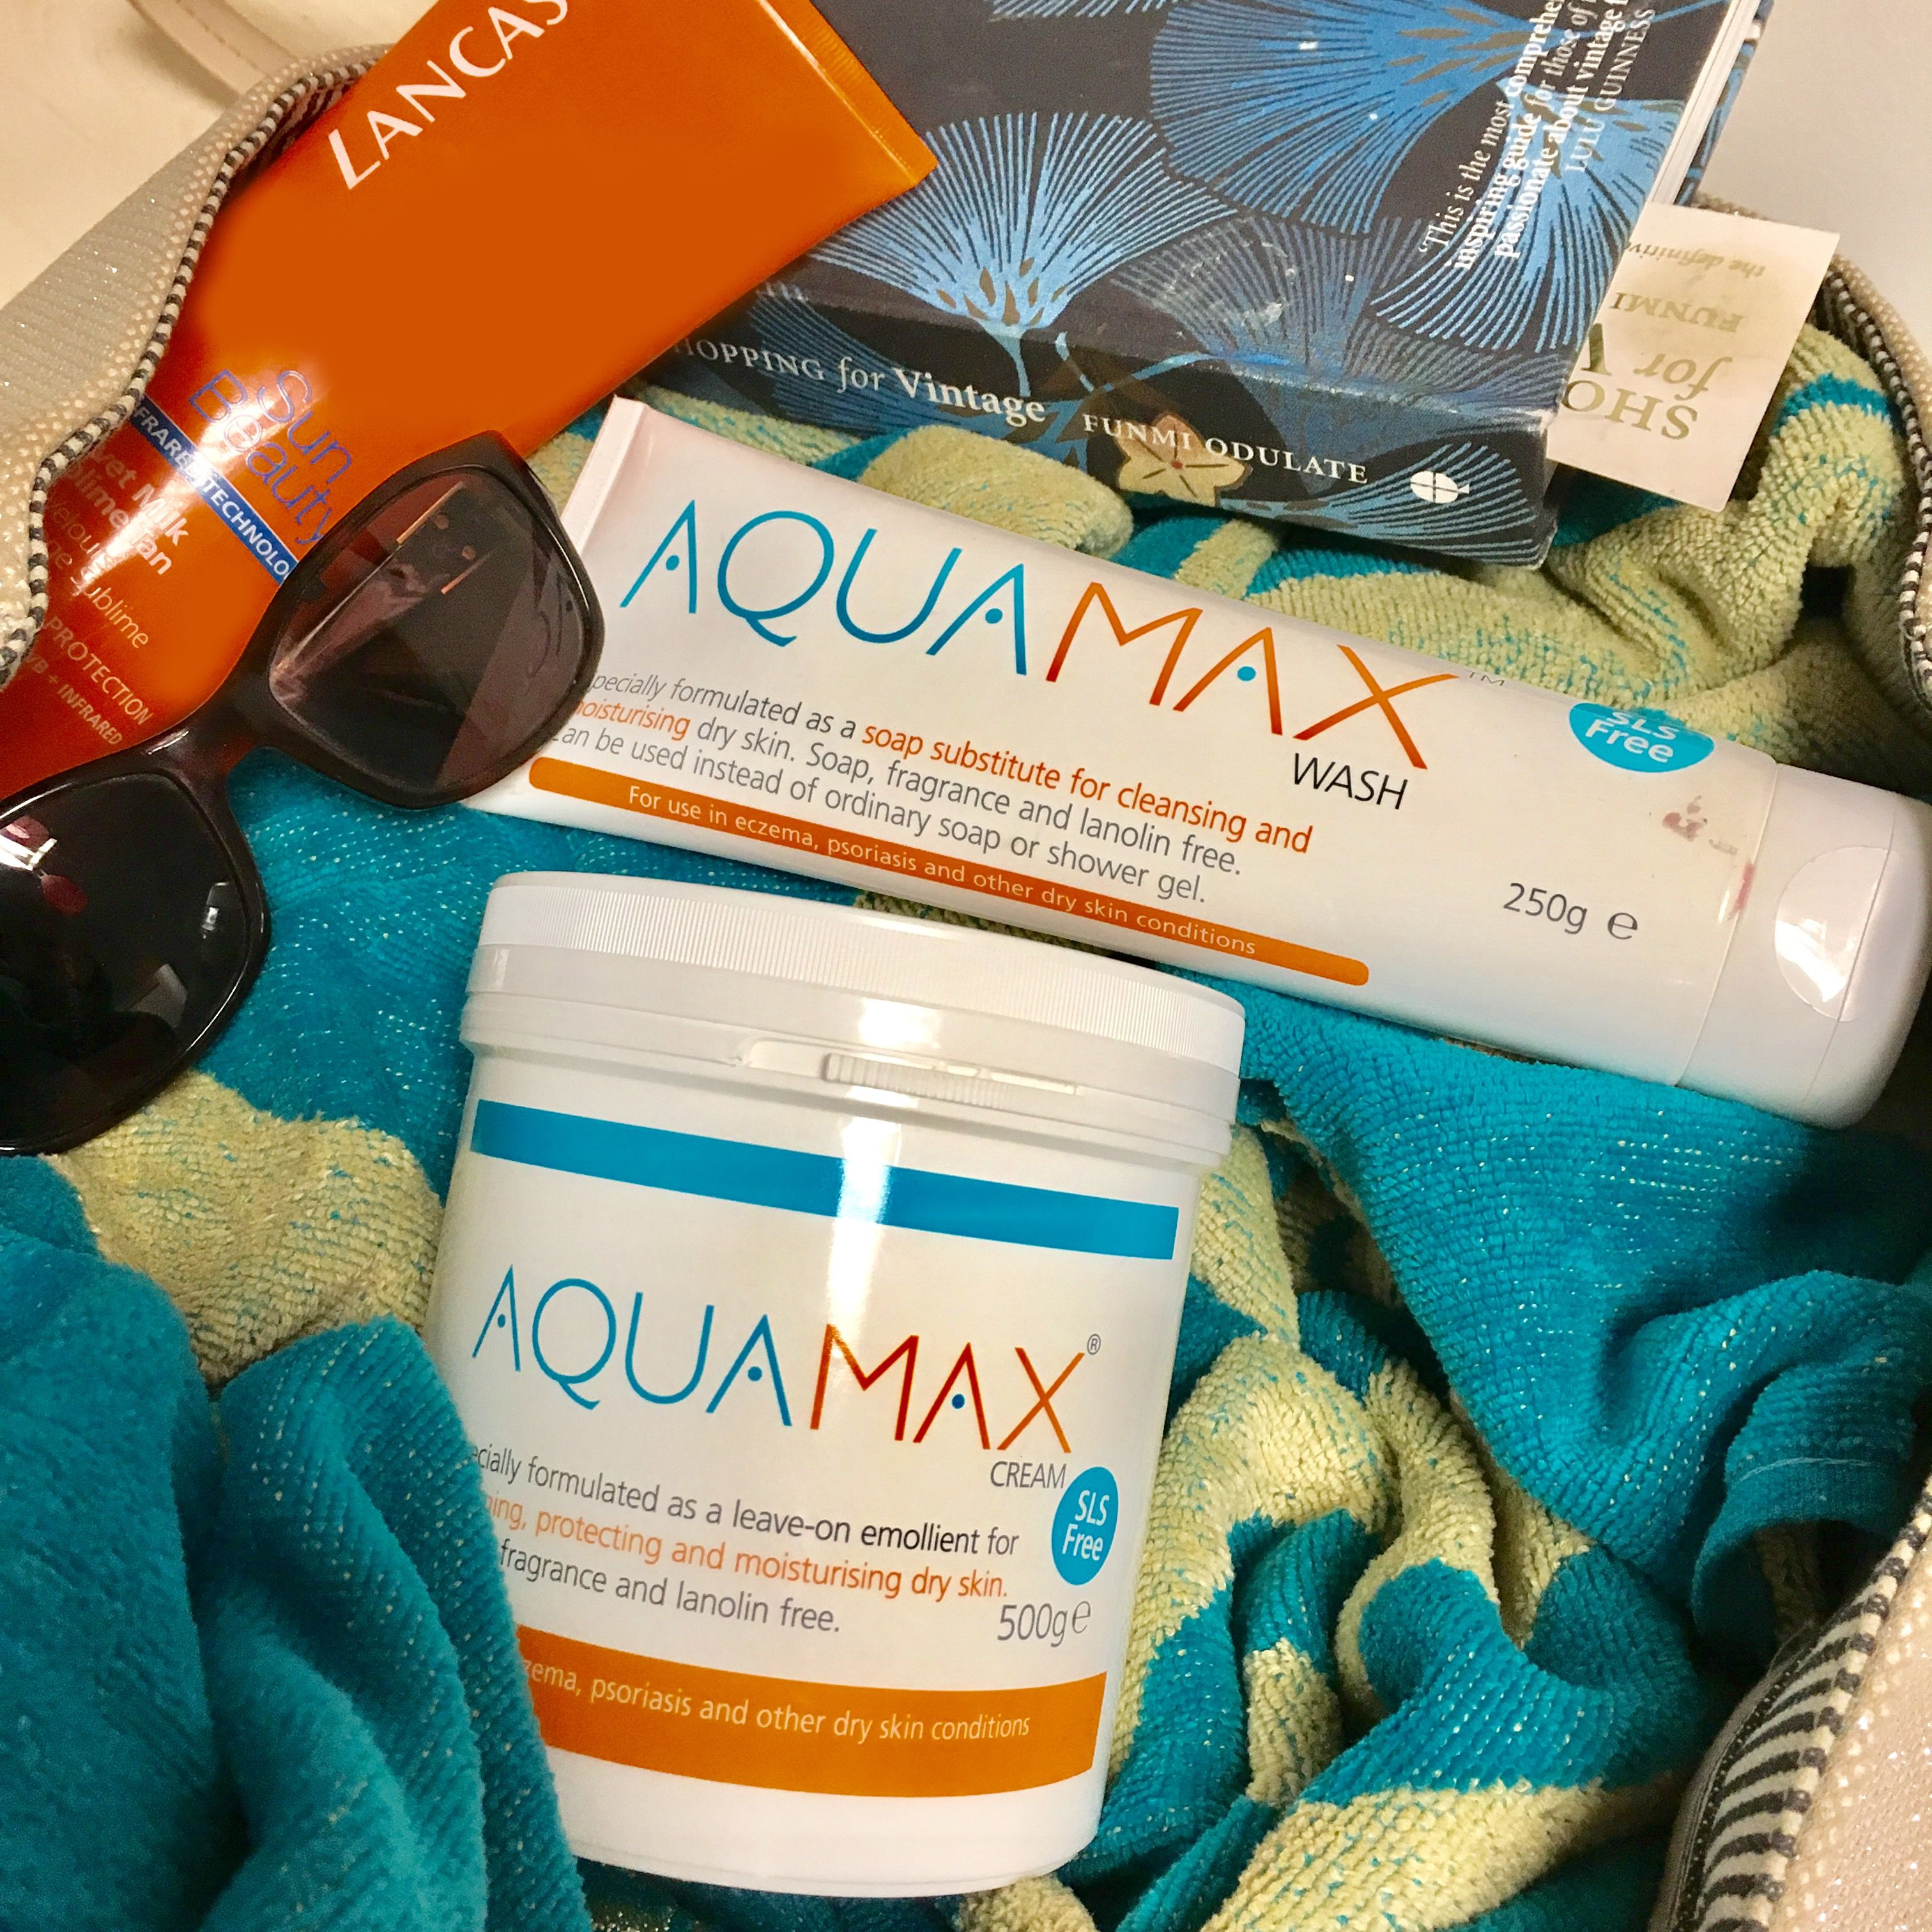 Aquamax emollient range, specially formulated to help